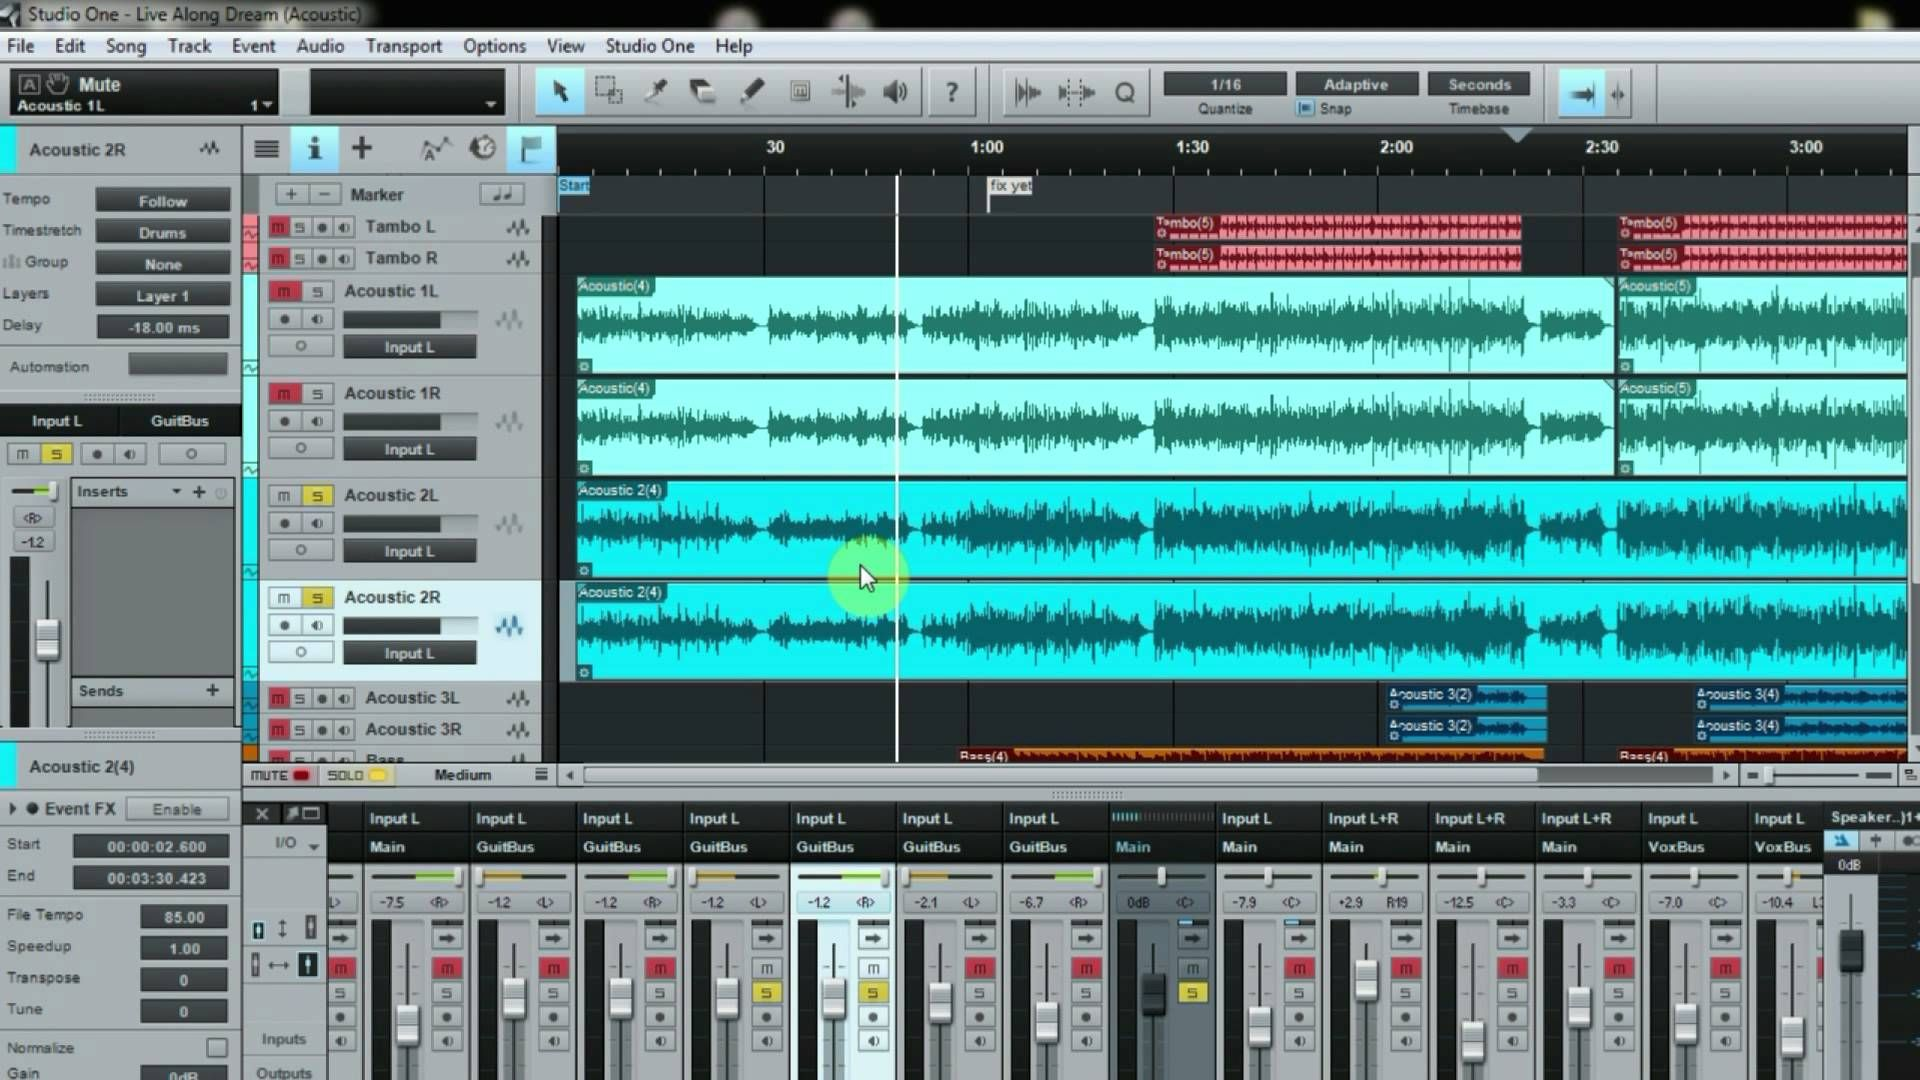 Studio One 2 How To Get Full Acoustic Guitar Sound Acoustic Guitar Acoustic How To Get